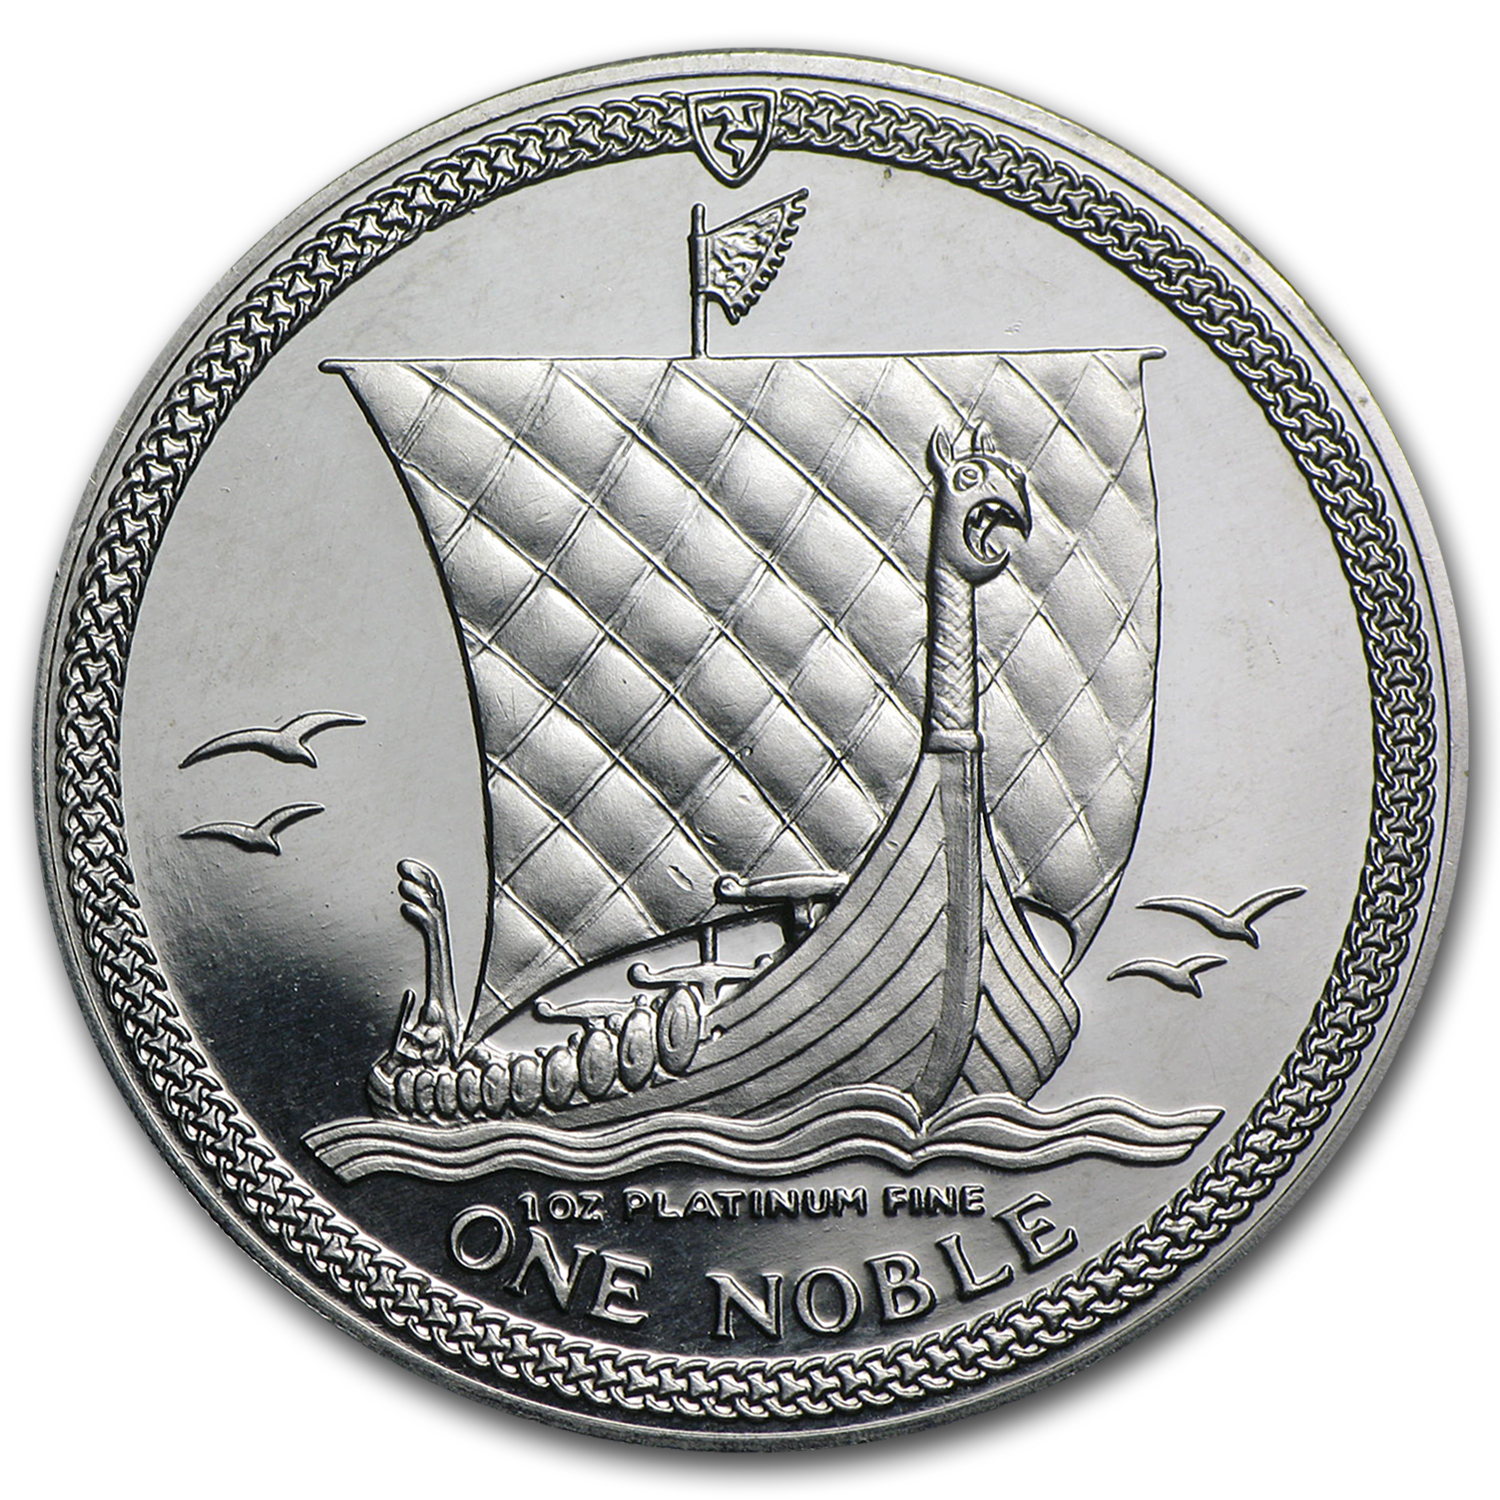 Isle of Man 1 oz Platinum Noble Proof